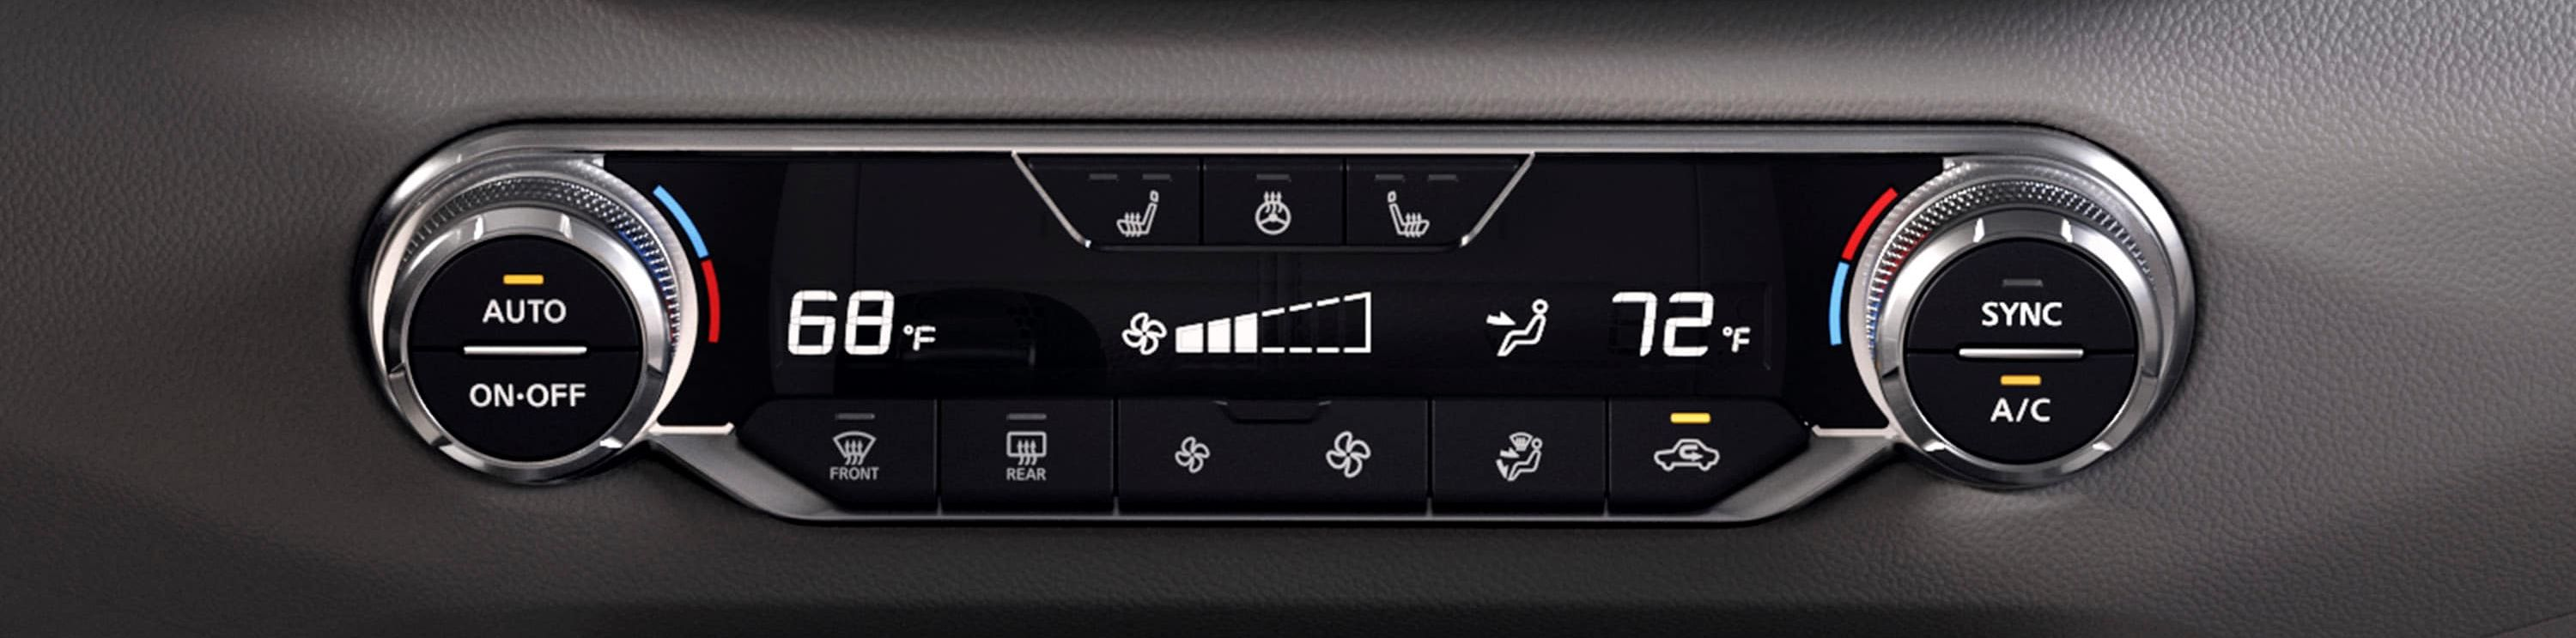 Climate Control System in the 2019 Altima